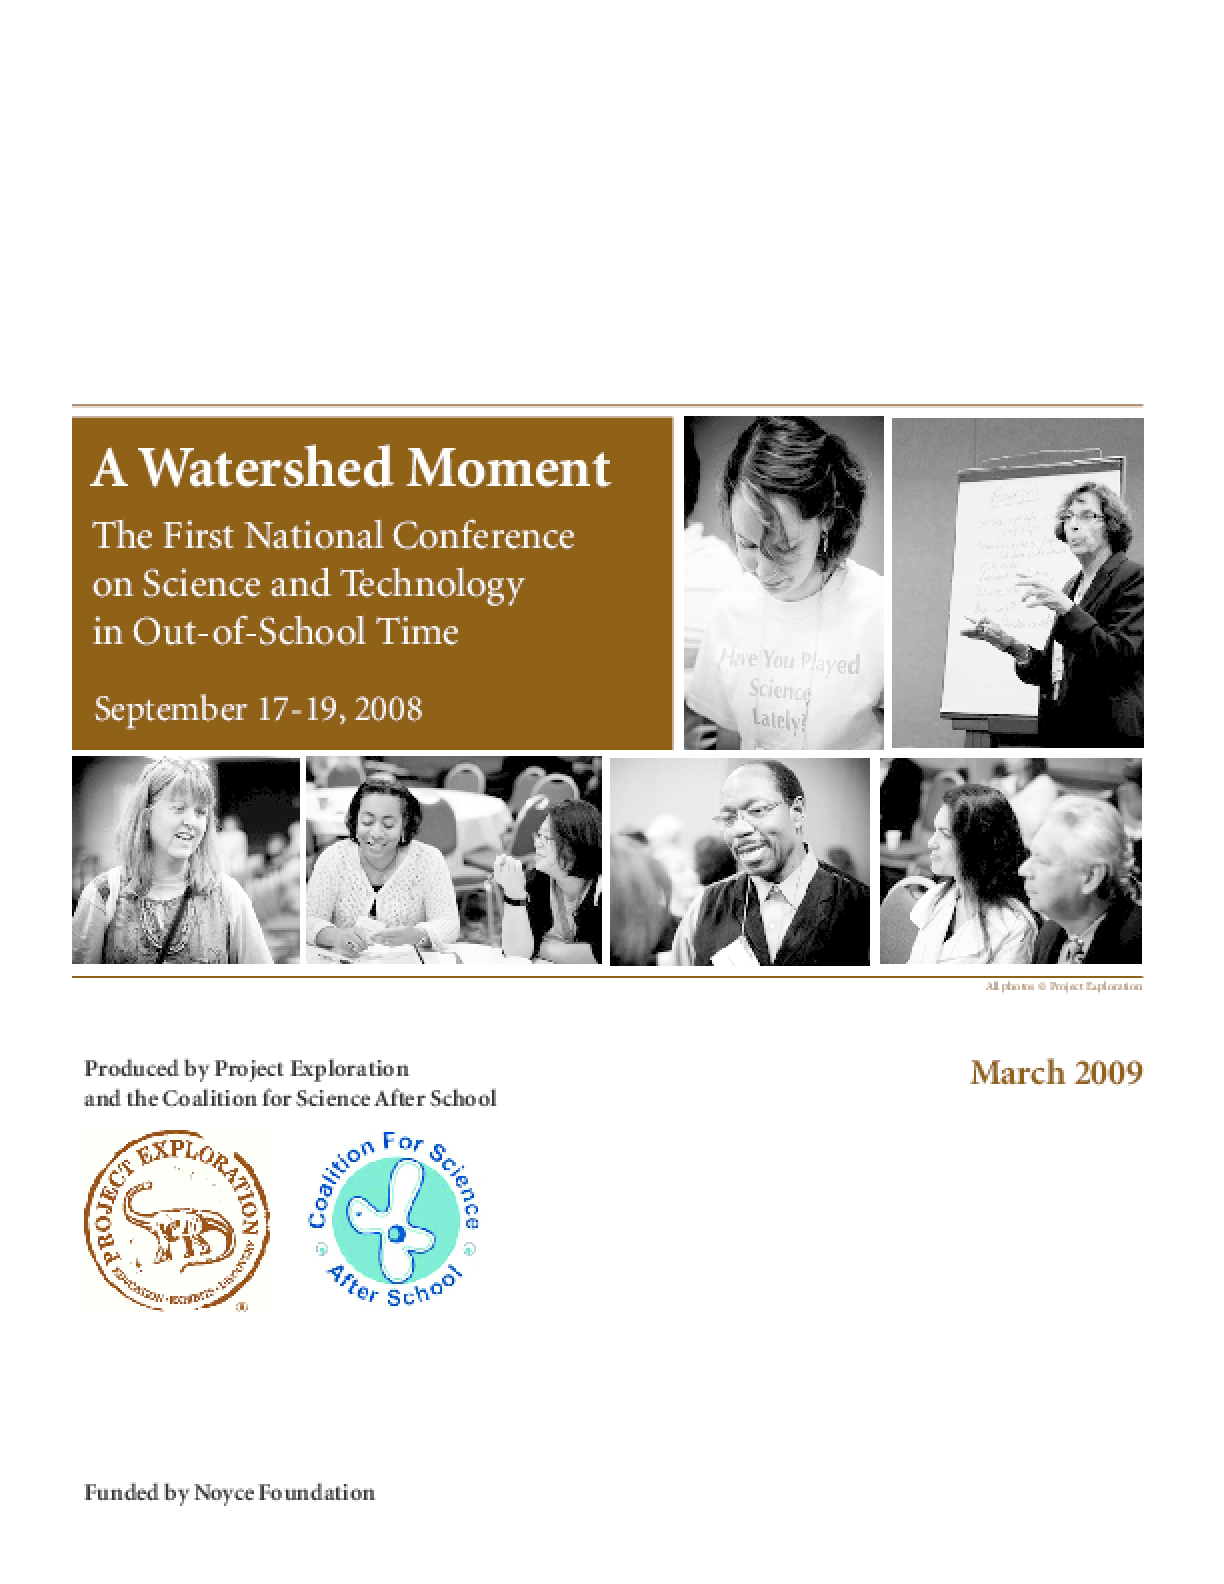 A Watershed Moment: The First National Conference on Science in Out-of-School Time